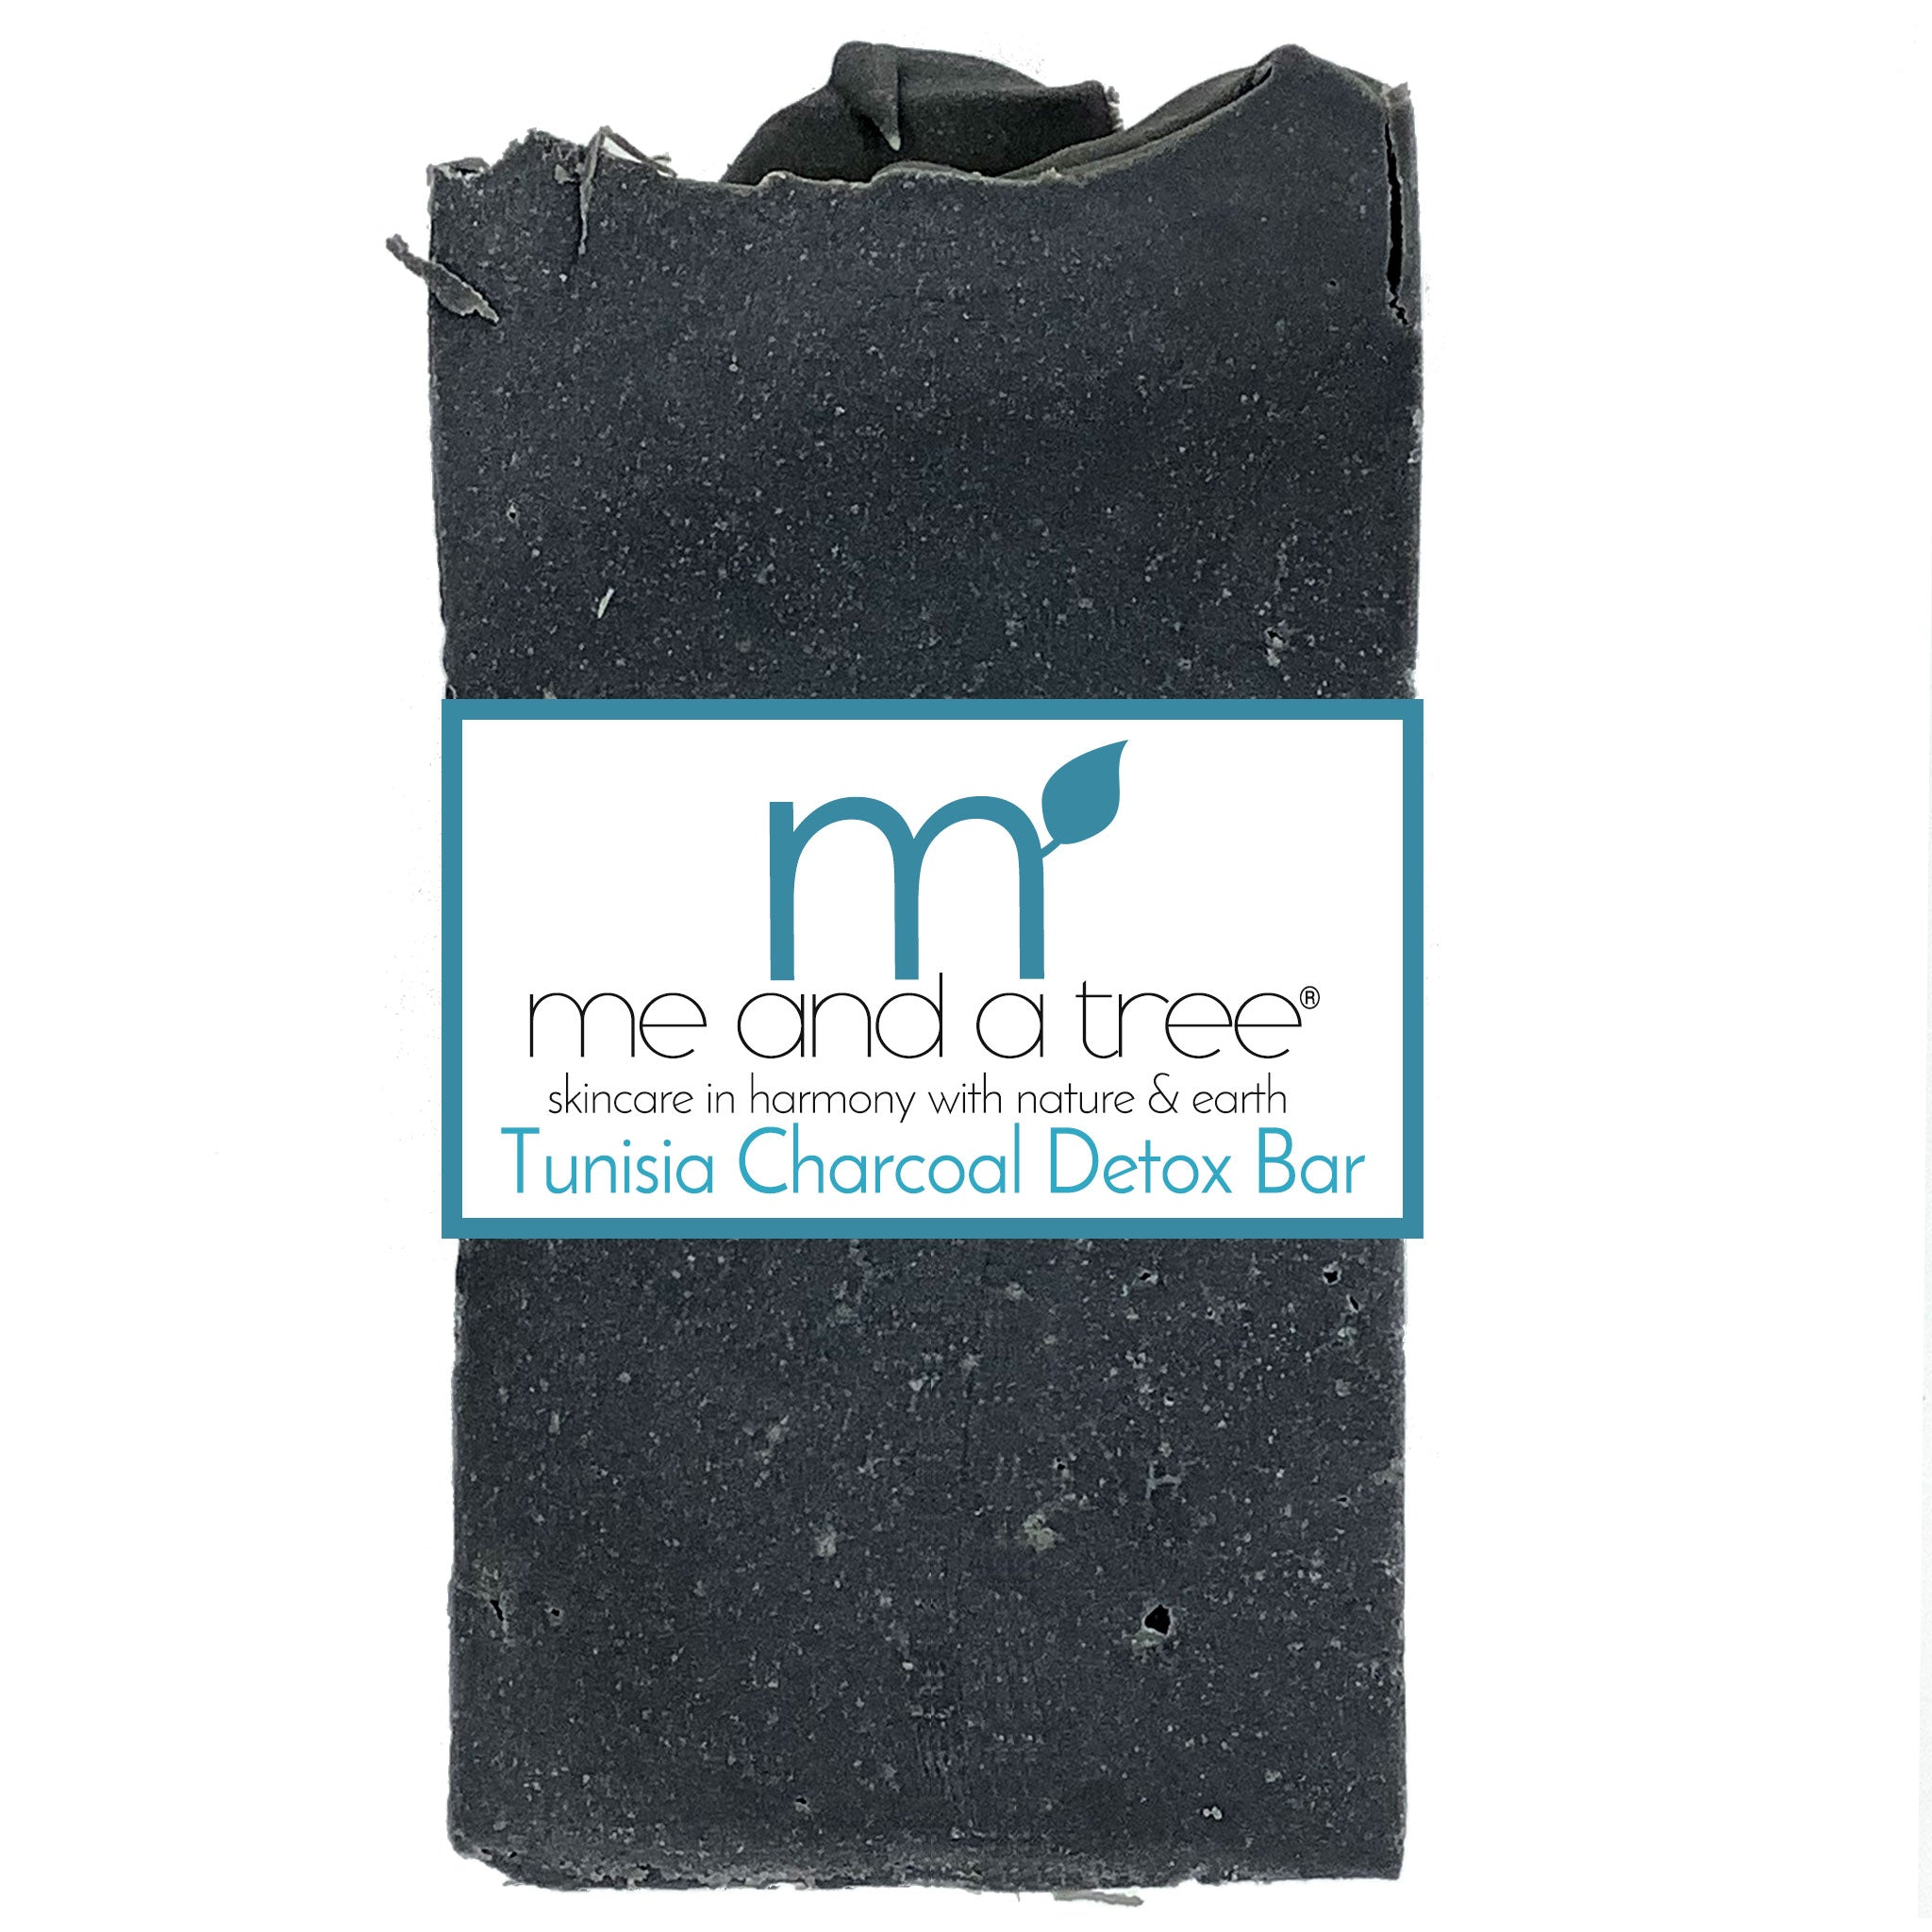 Tunisia Charcoal Detox Bar Soap - me and a tree skincare